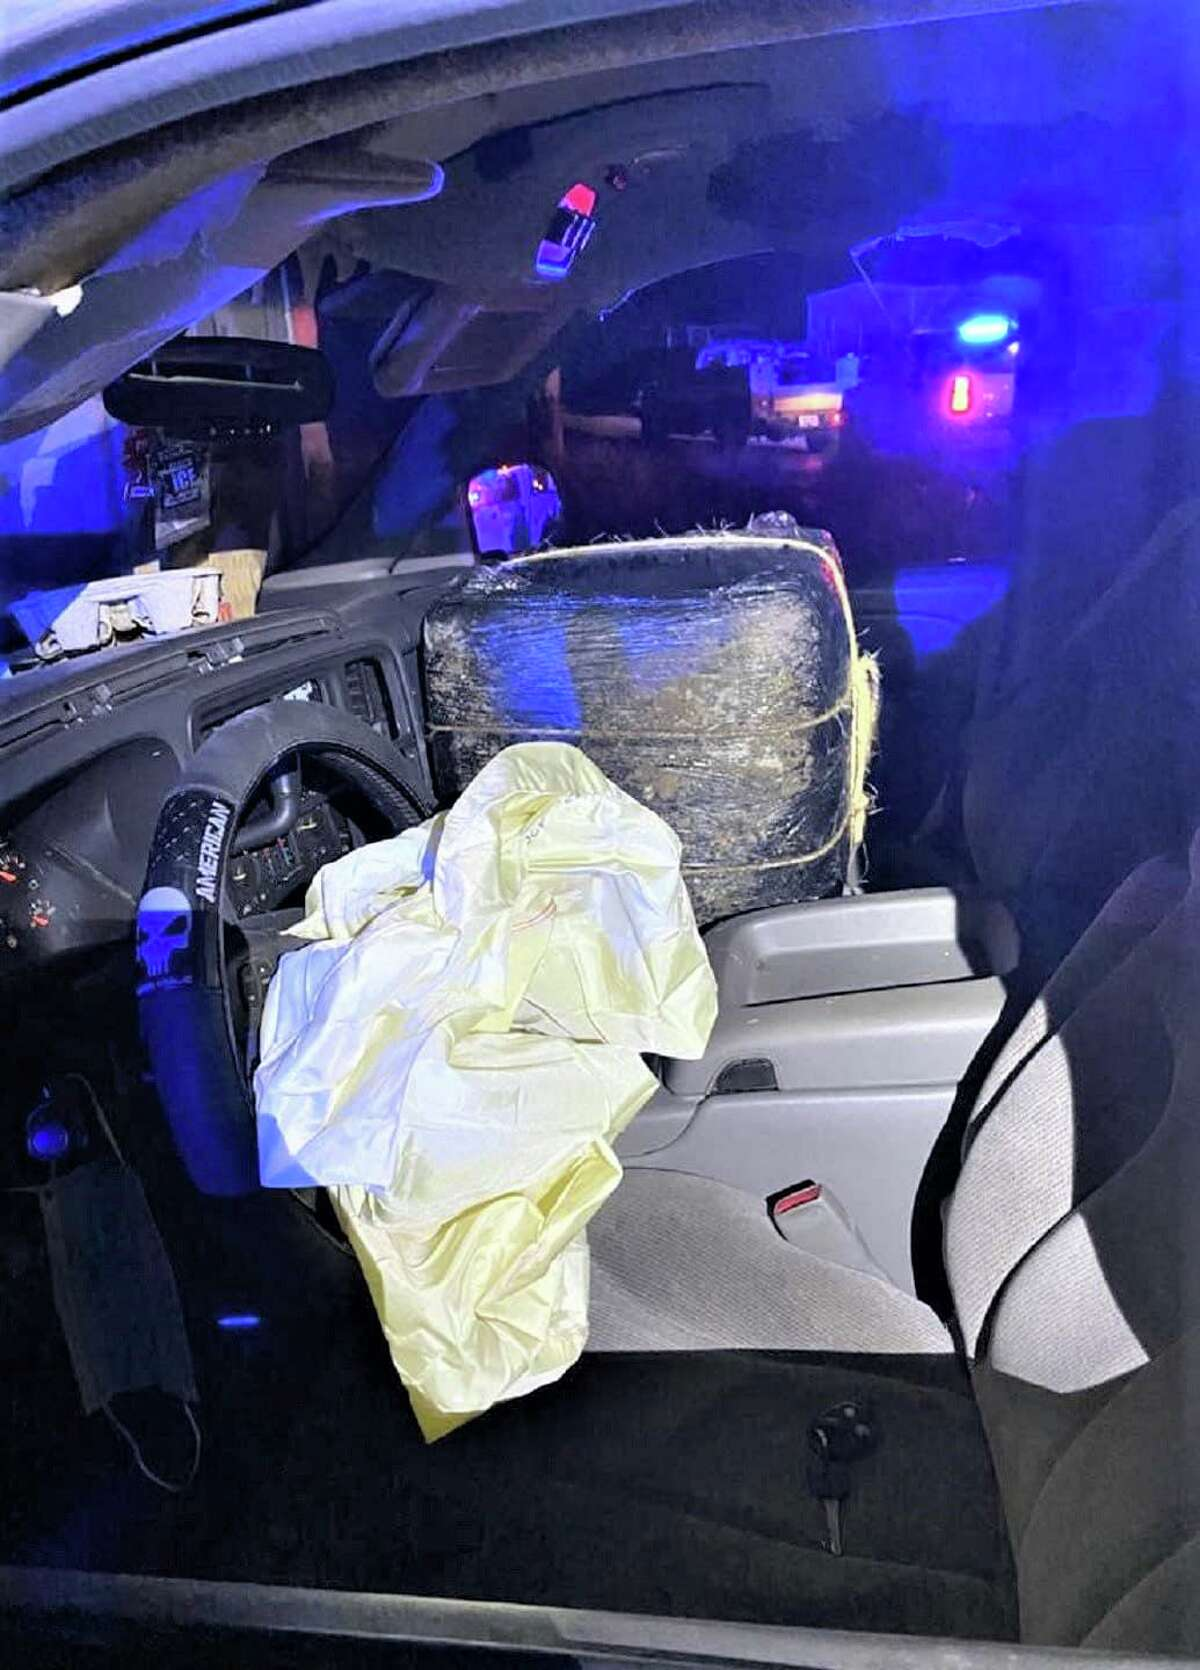 A marijuana smuggling attempt ended with a crash in west Laredo. U.S. Border Patrol agents seized approximately 400 pounds of marijuana.